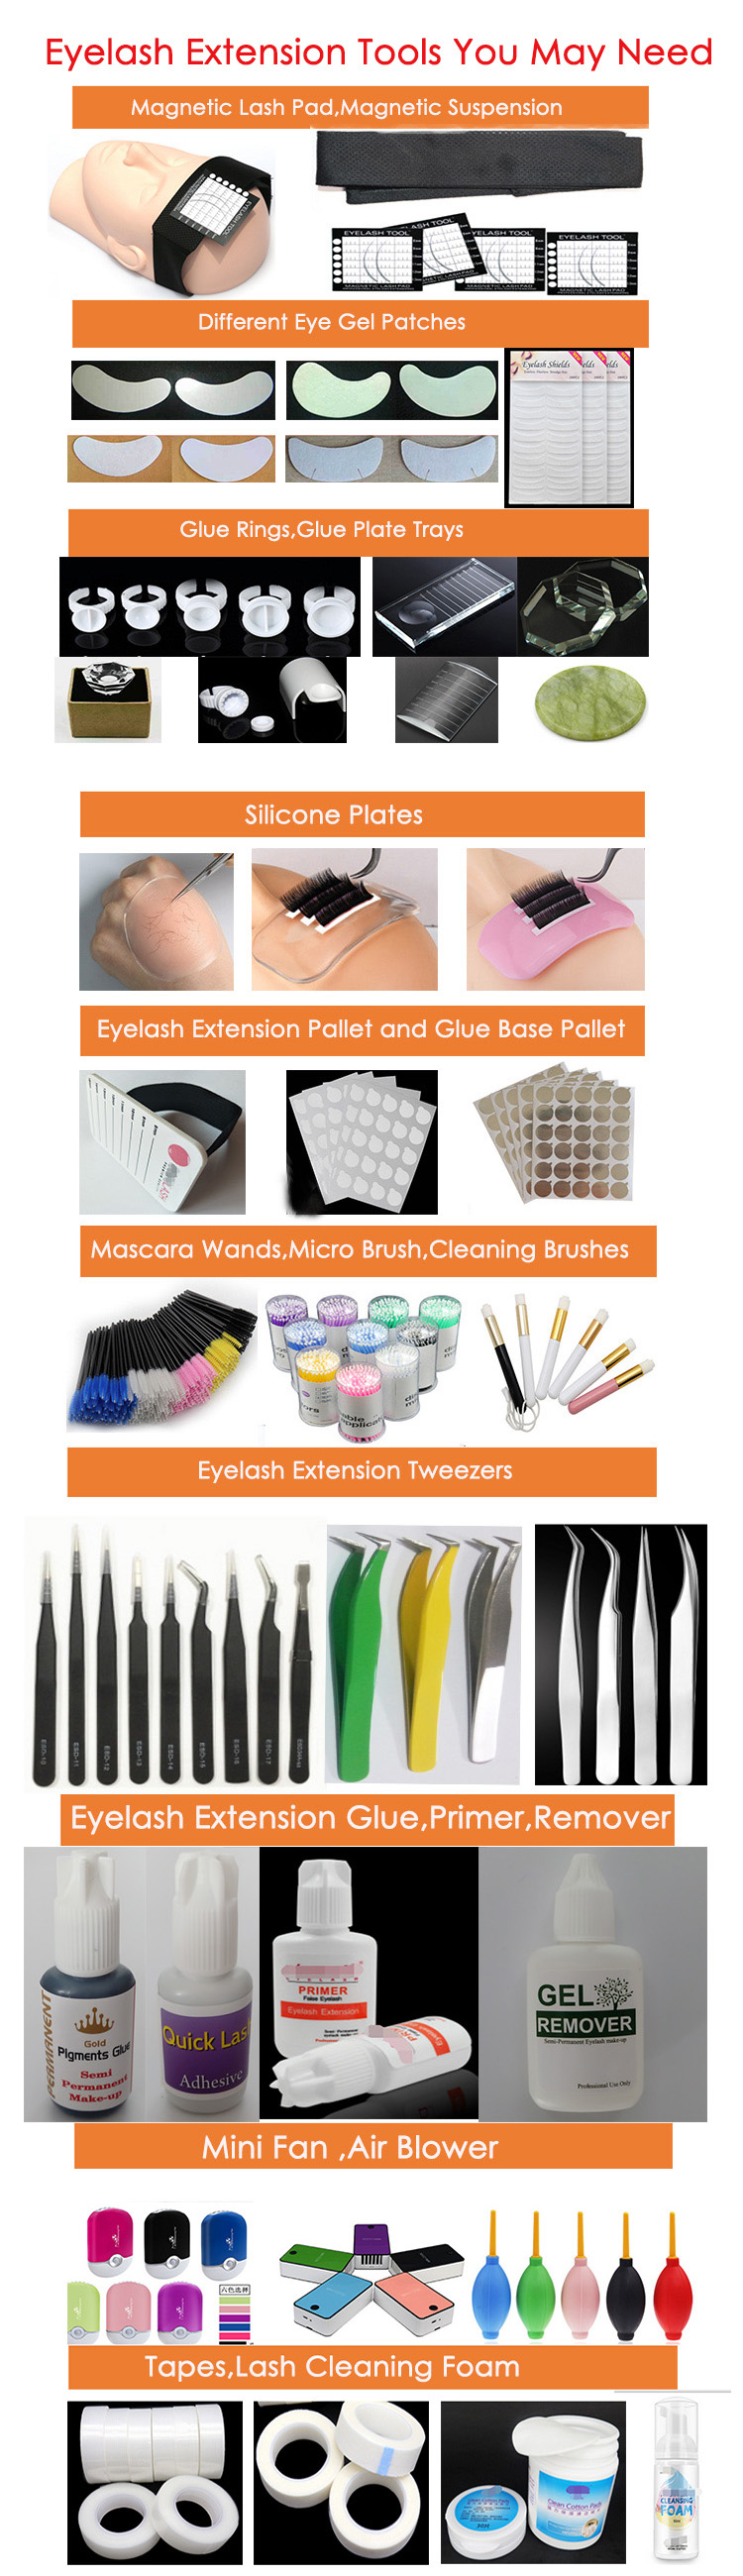 eyelash extension products factory supply China.jpg